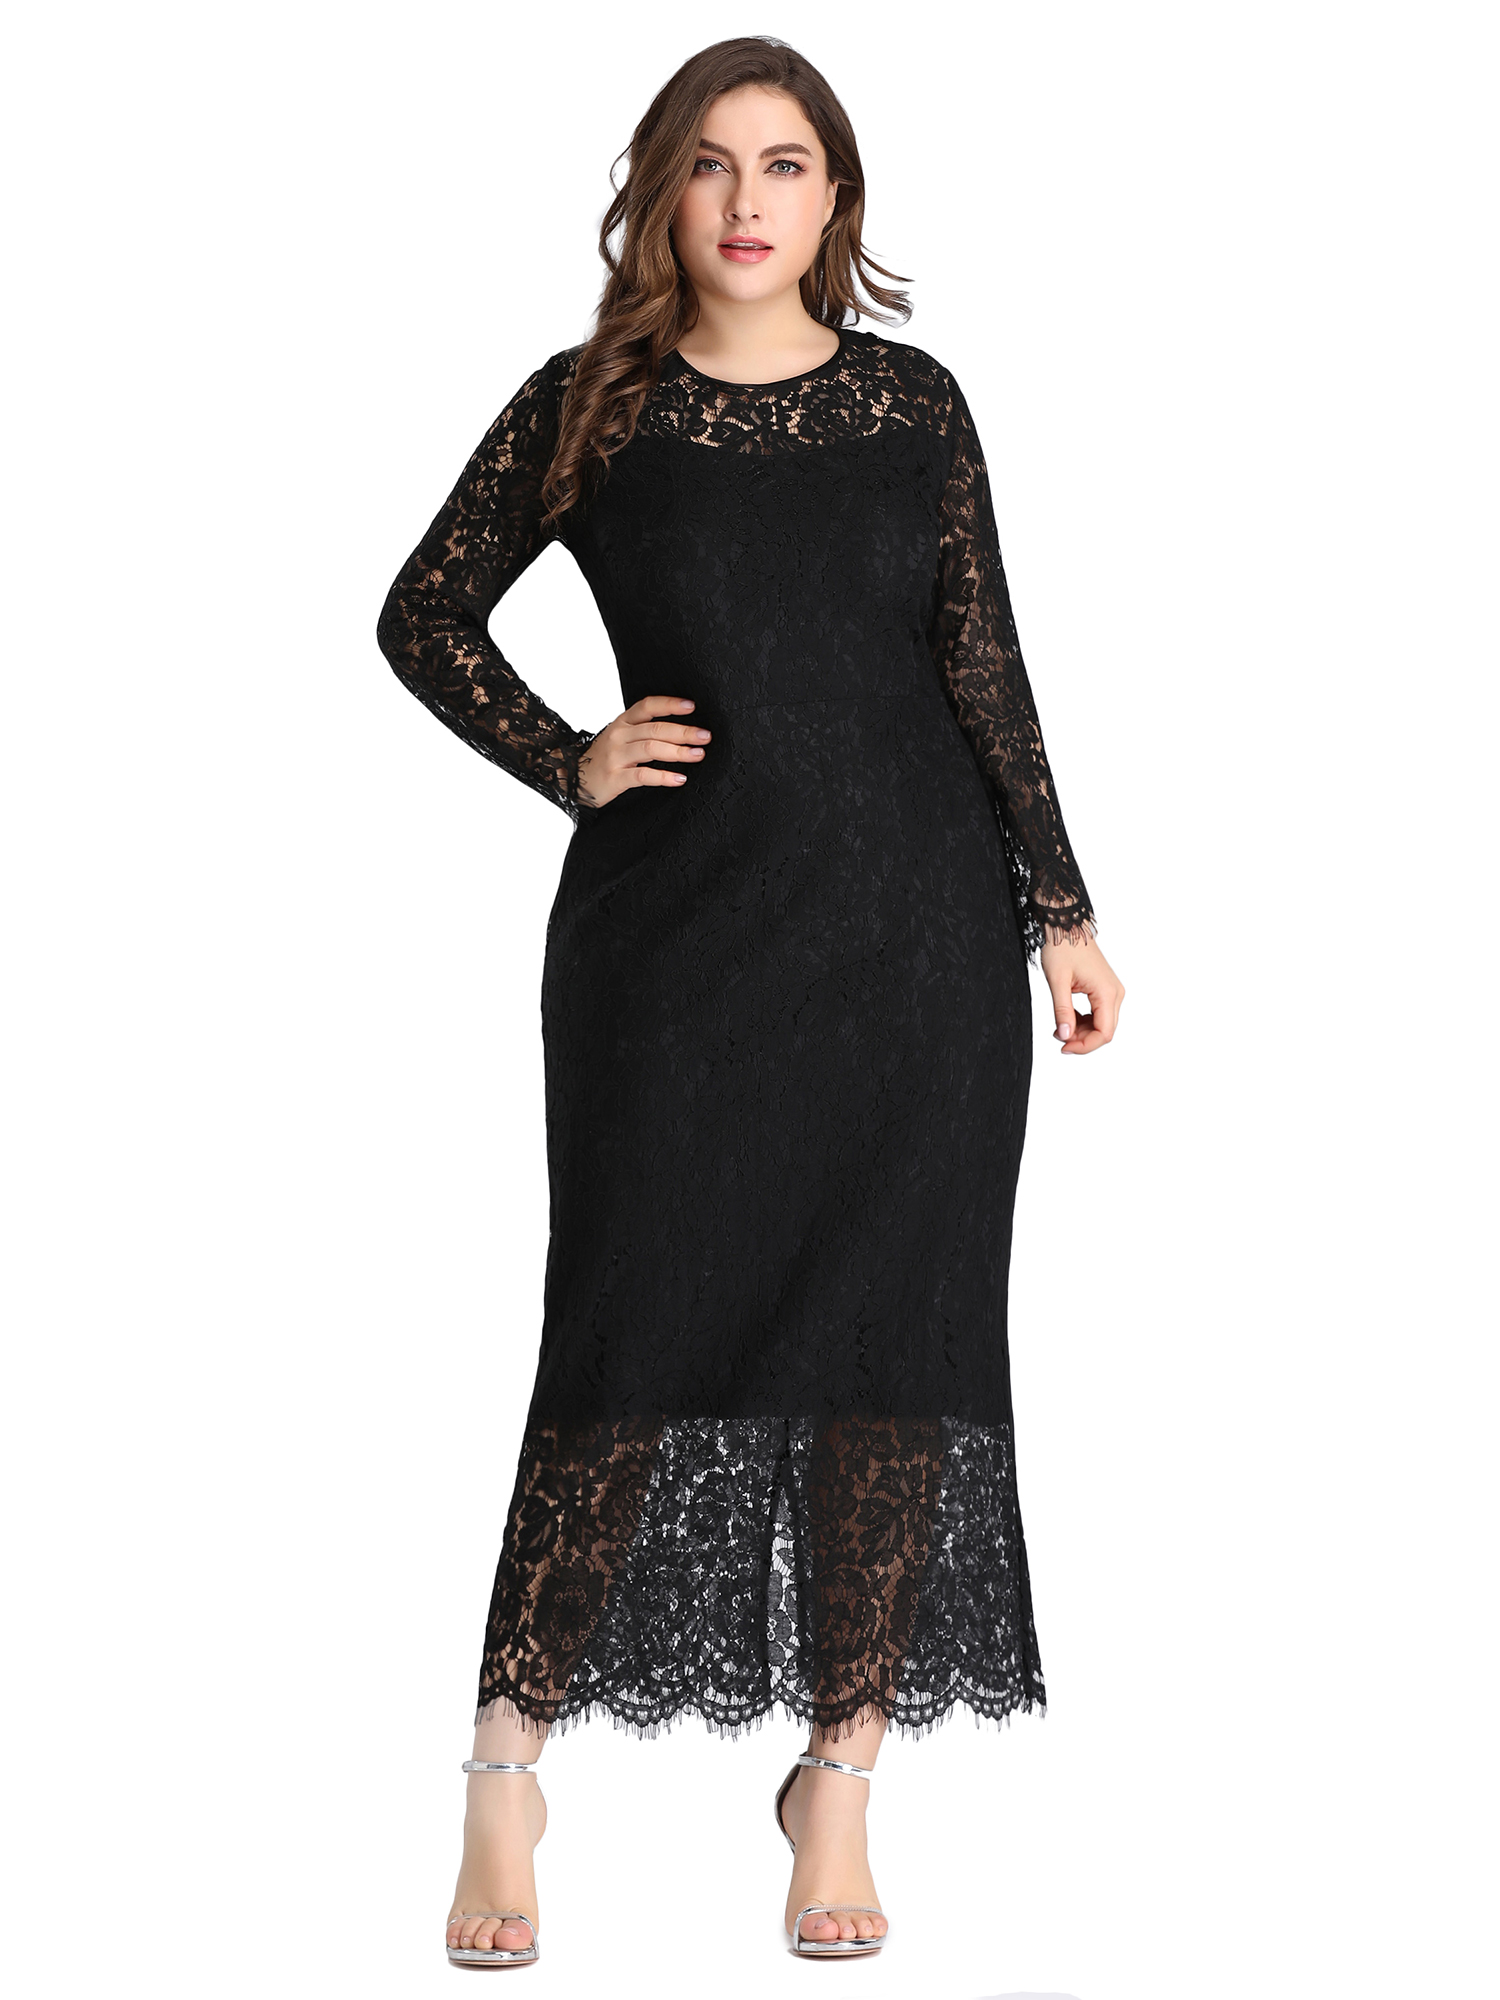 Ever-pretty-US-Plus-Size-Black-Lace-Long-Sleeve-Party-Dresses-Evening-Prom-Gowns thumbnail 8